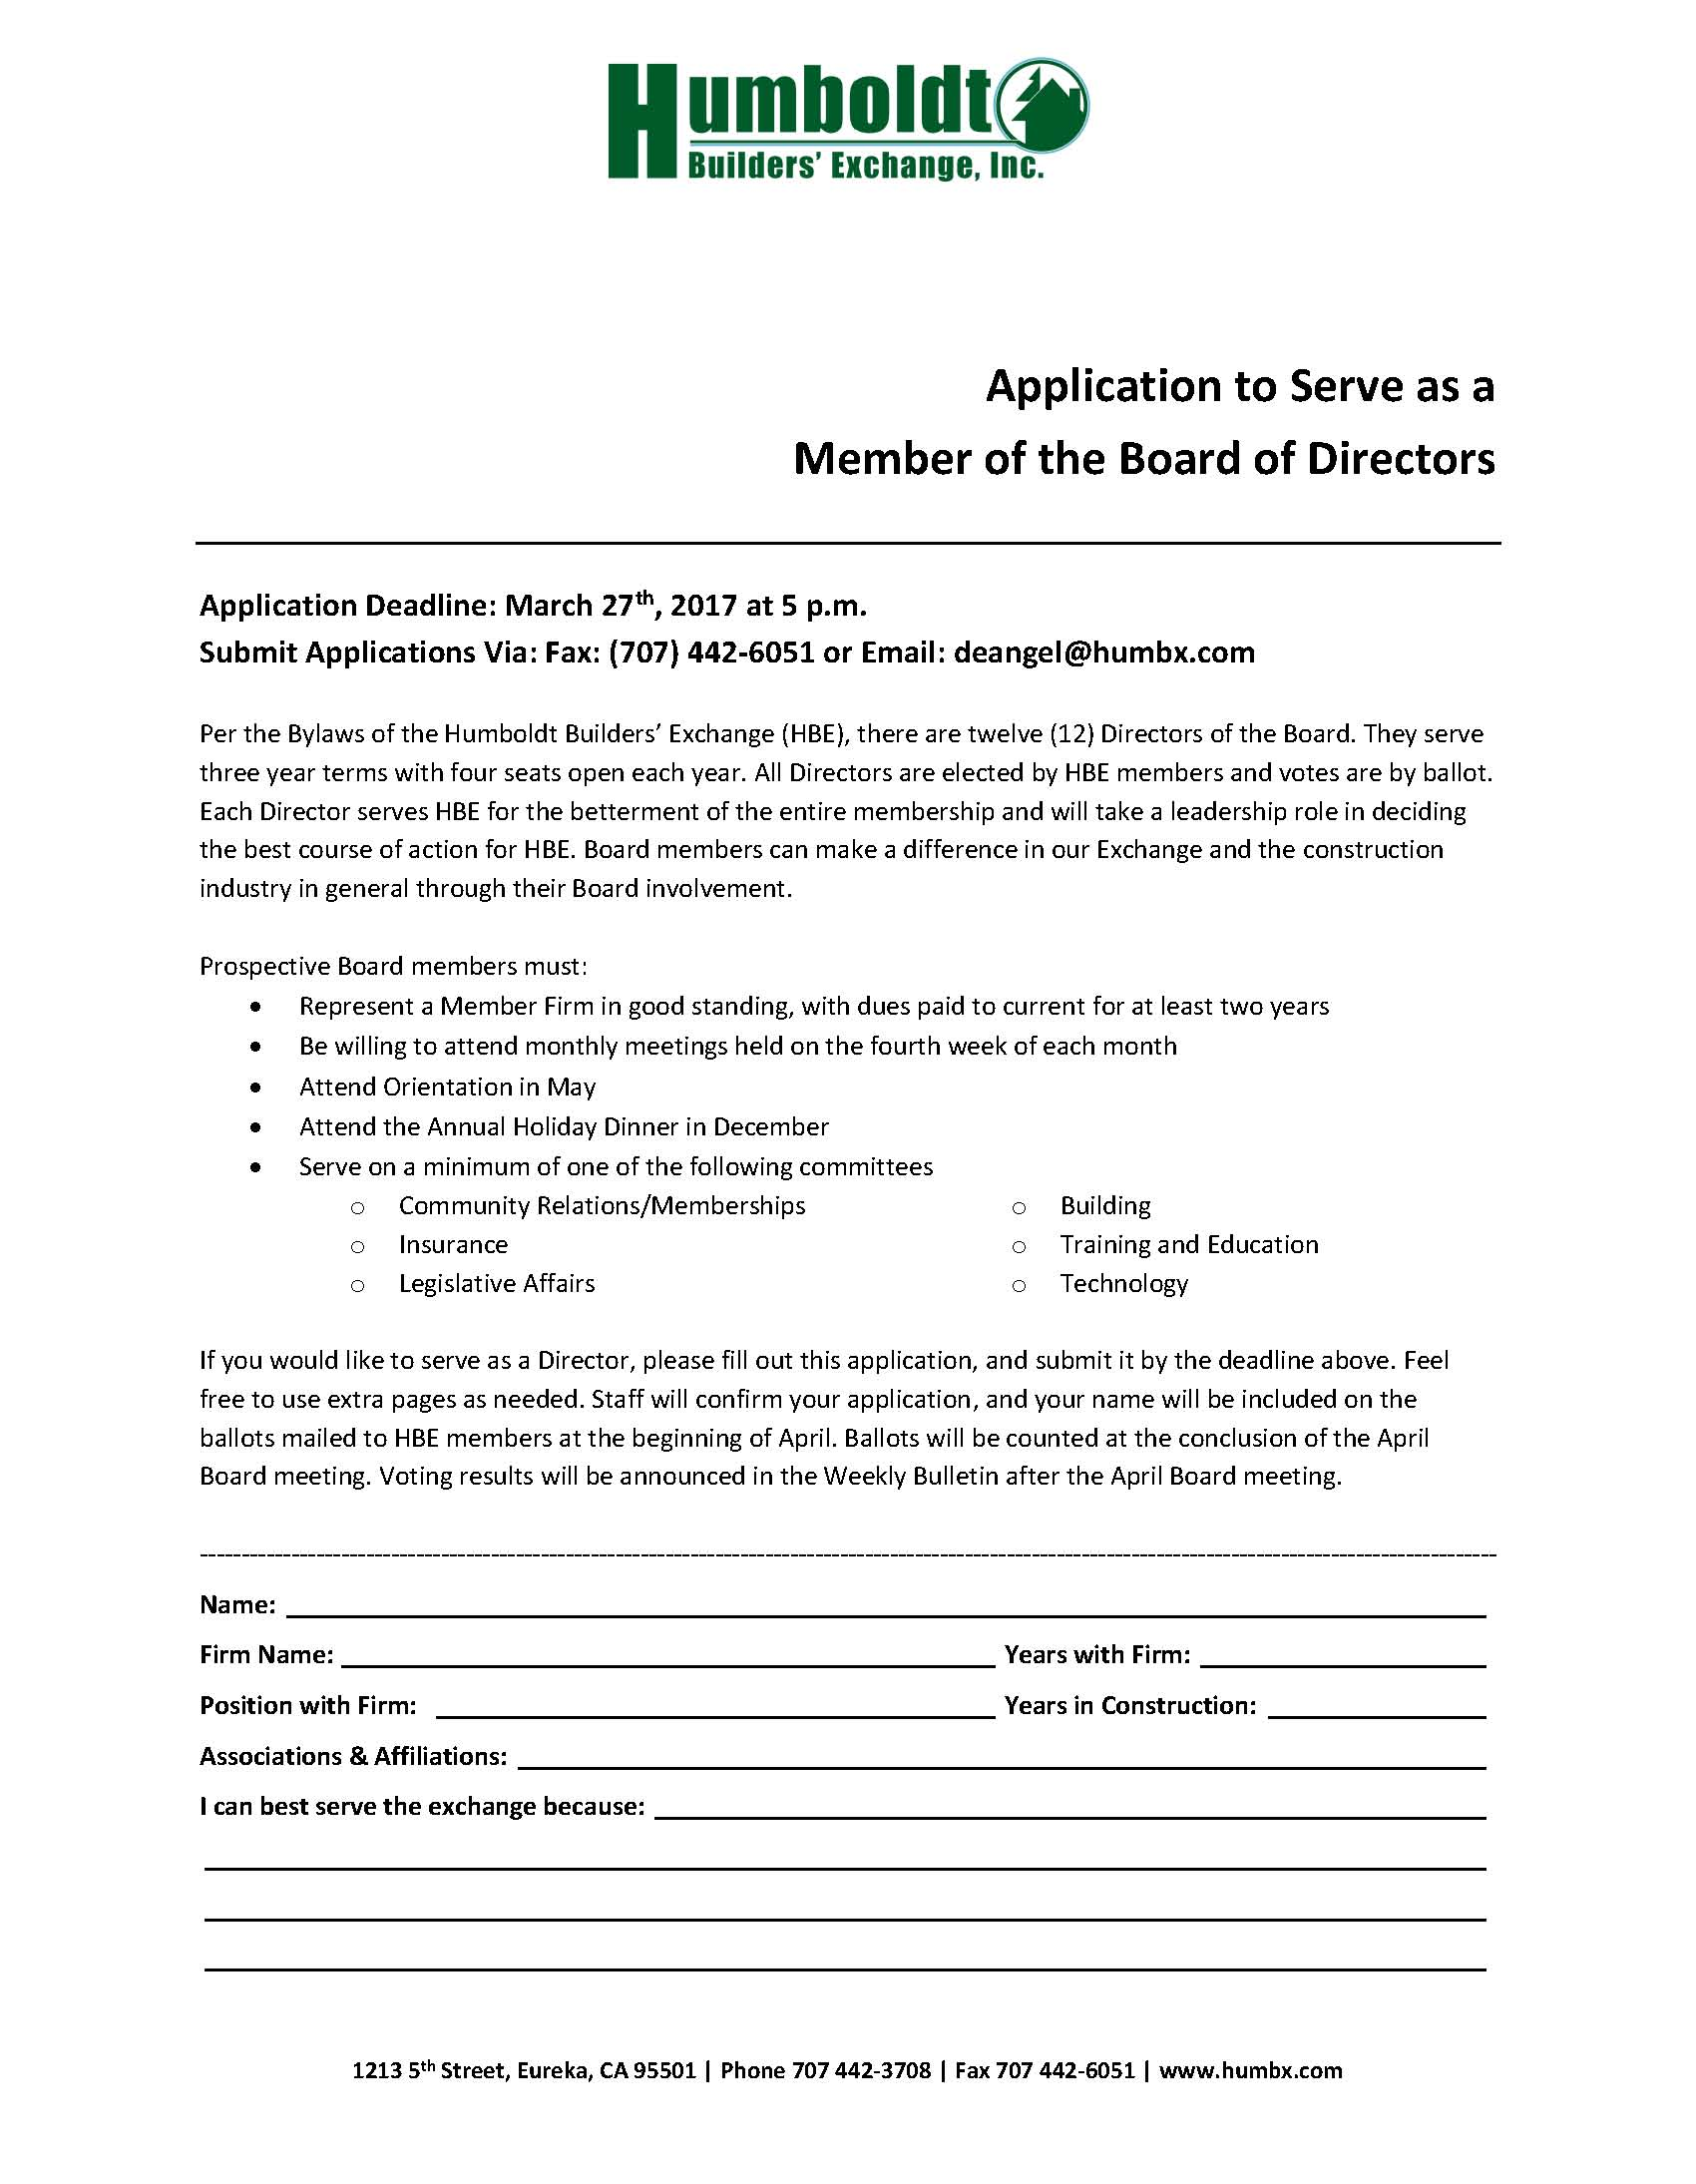 Application for Board of Directors